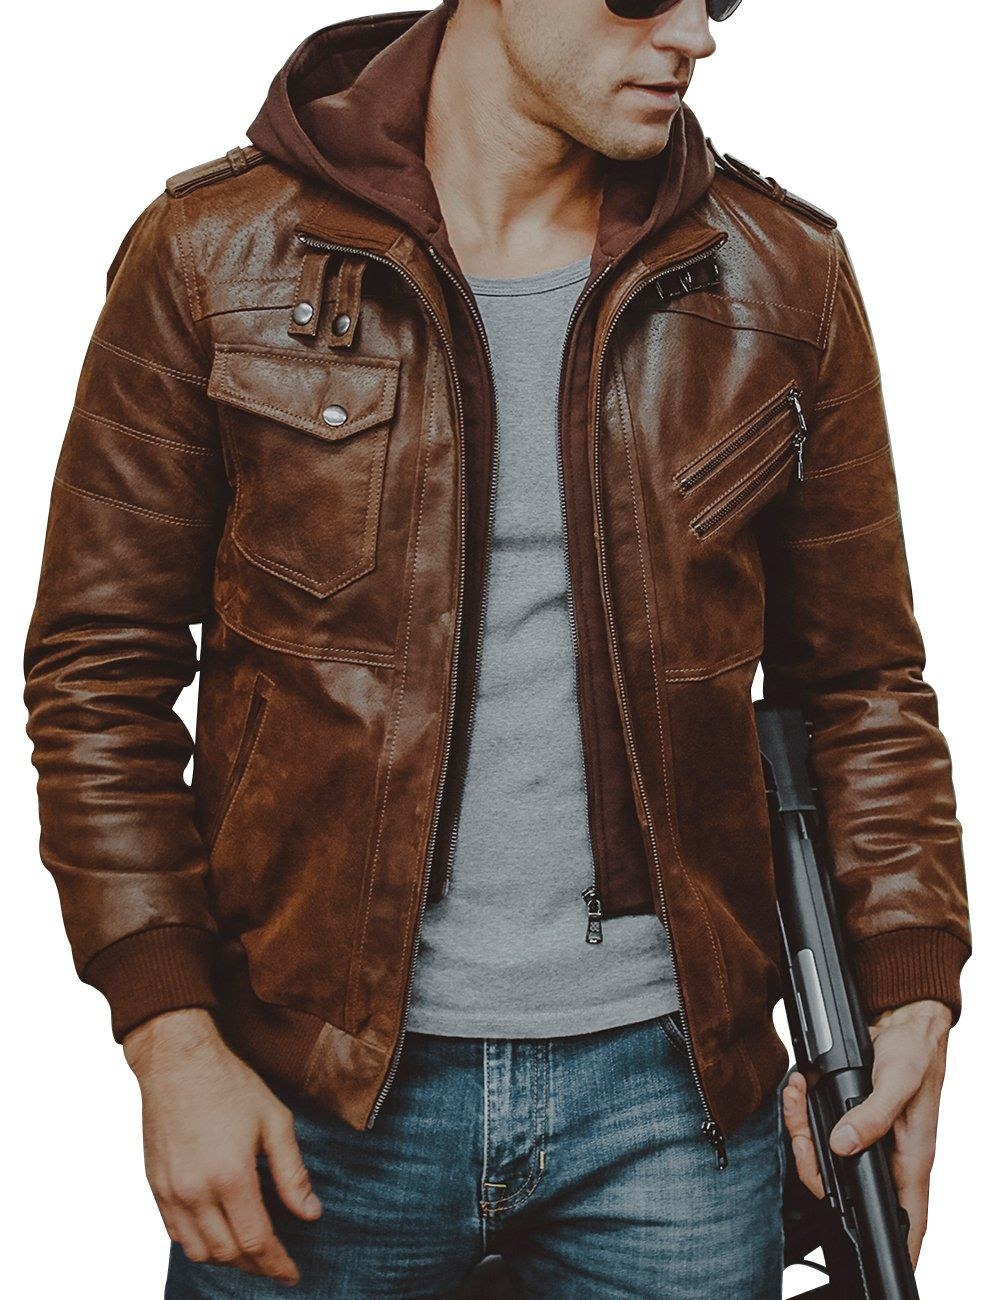 FLAVOR Men Biker Retro Brown Leather Motorcycle Jacket